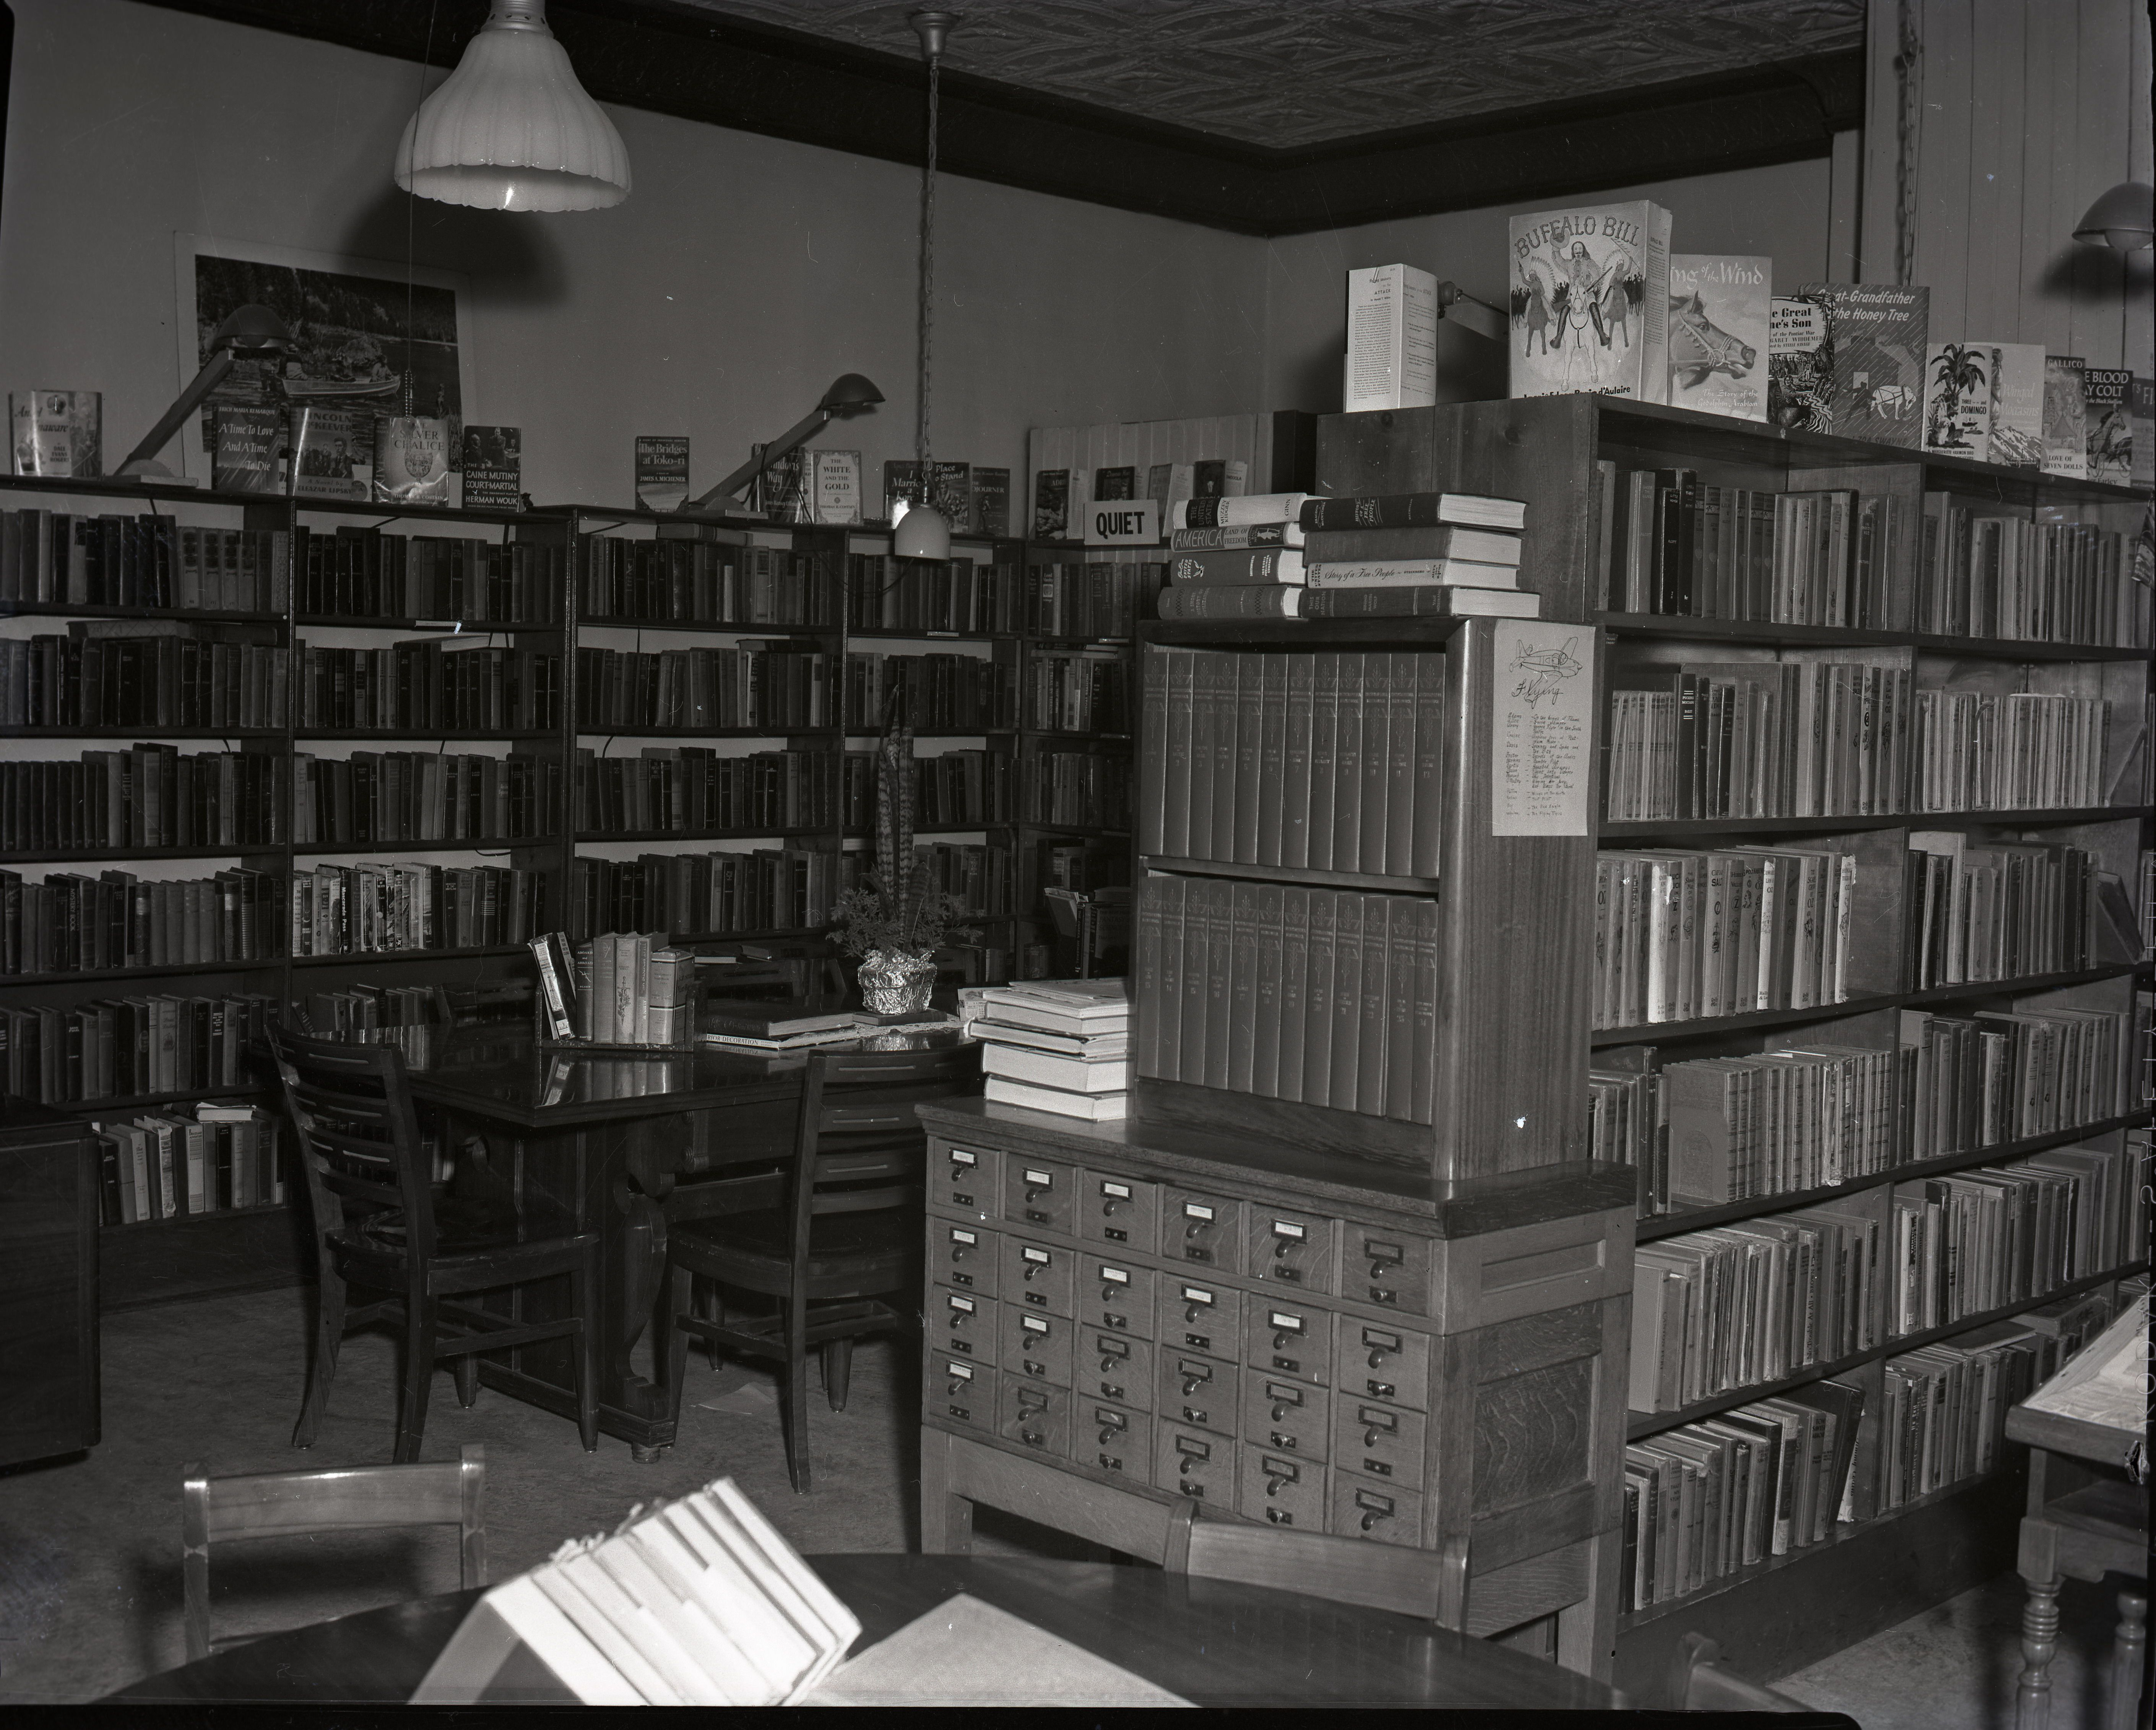 Brookfield Public Library Brookfield Illinois In The 1950 S Photo Courtesy Of Jeffery Johnson Brookfield Local History Library